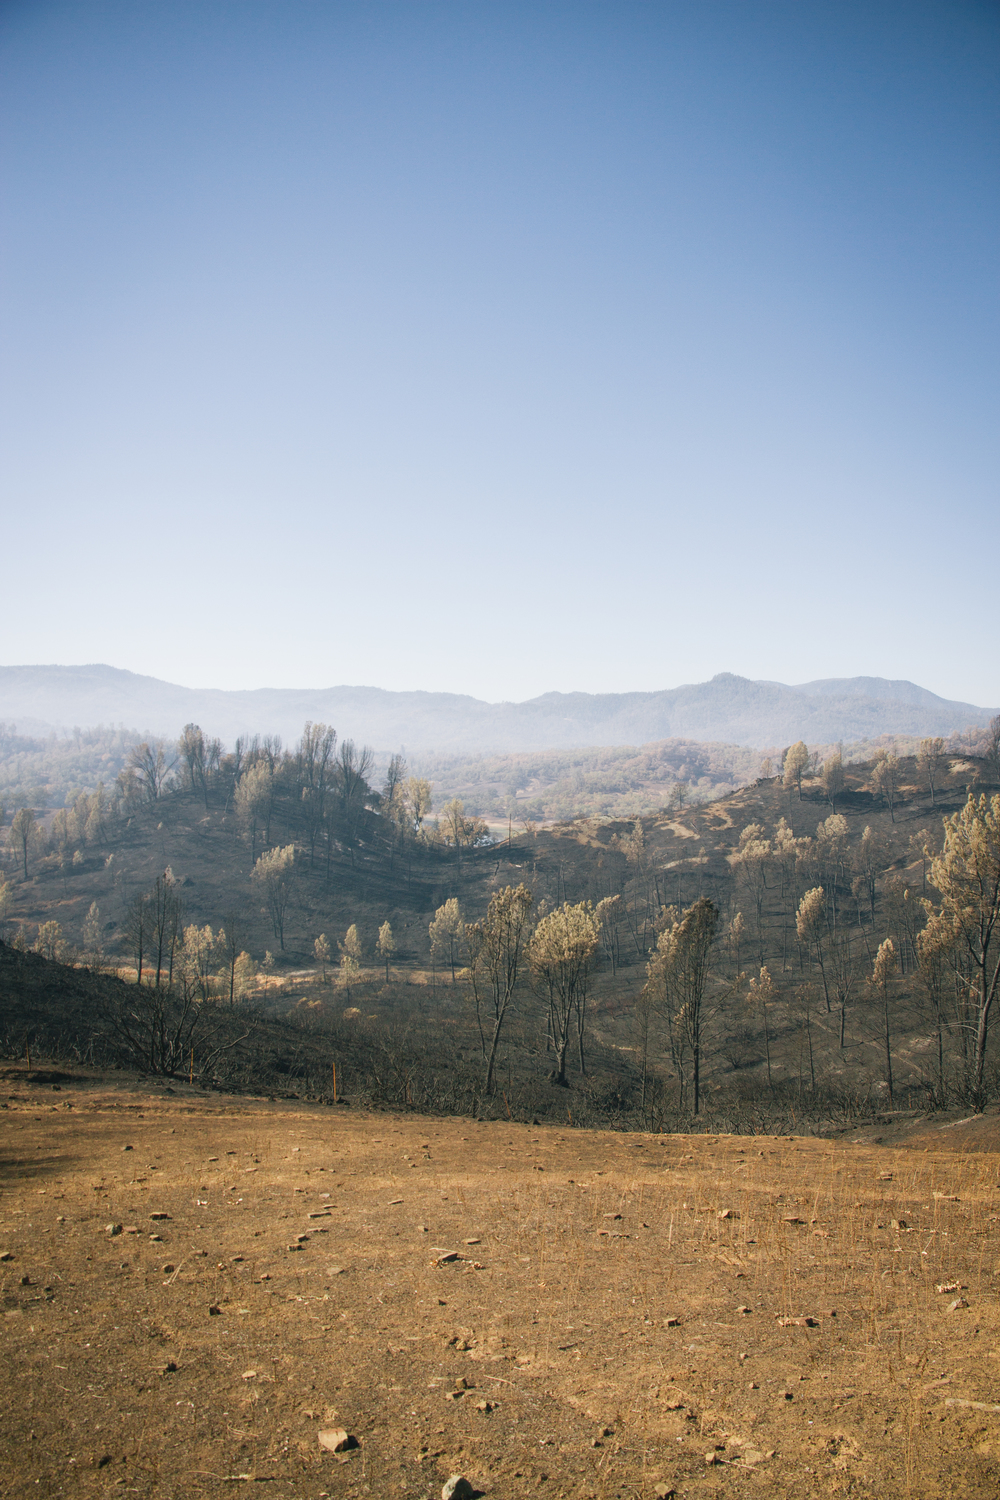 Valley Fire Aftermath: Black Hills between Middletown and Hidden Valley